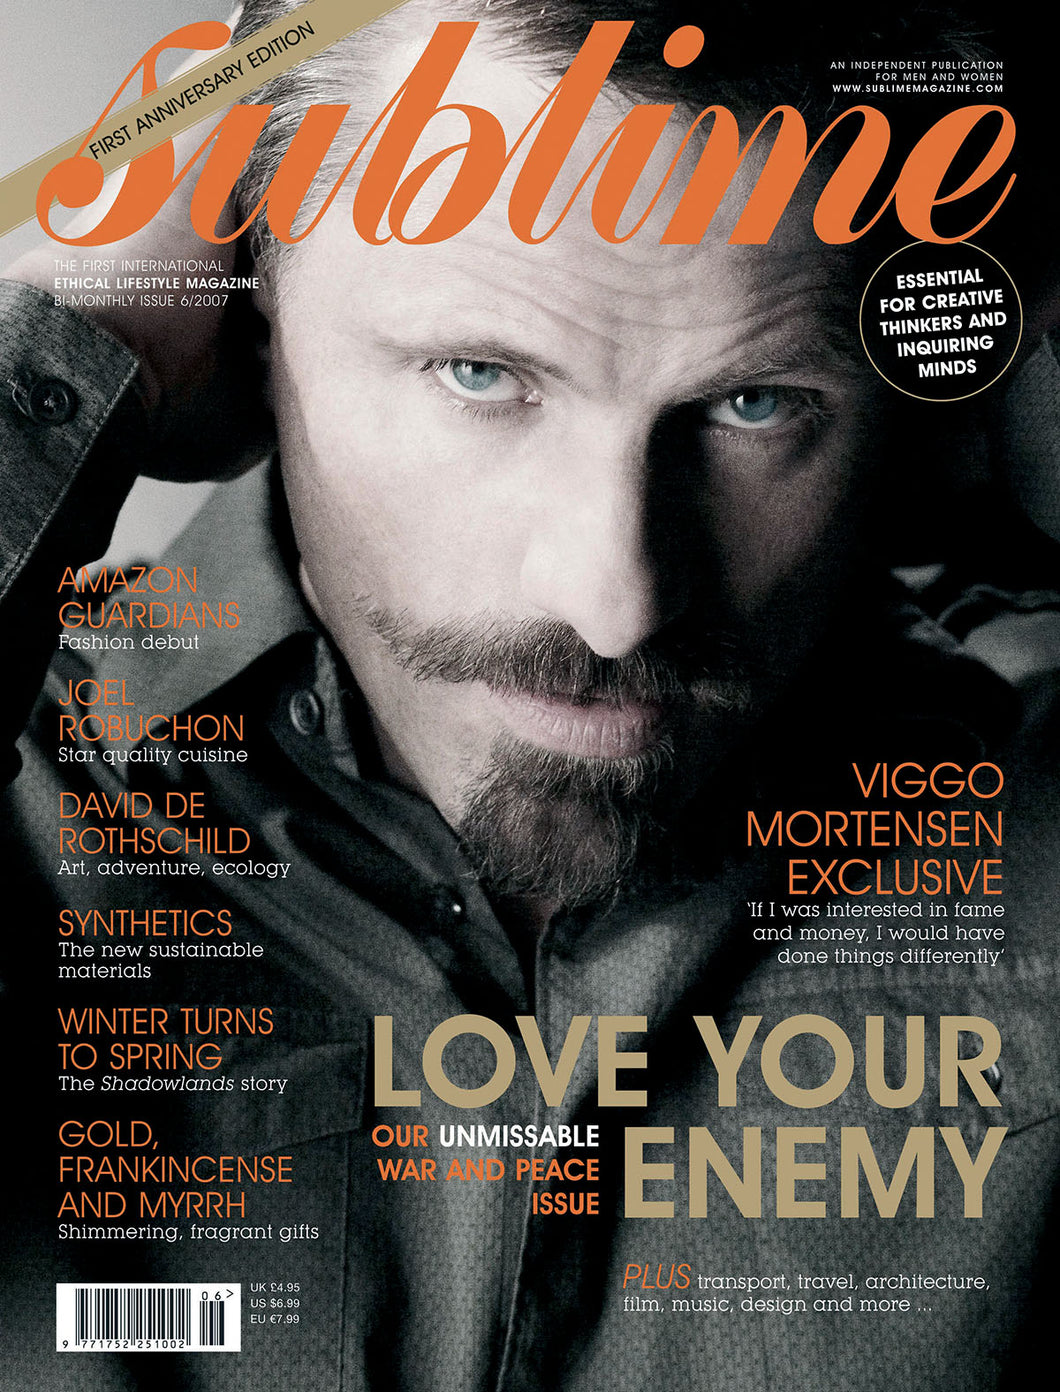 Issue 6 - Love Your Enemy